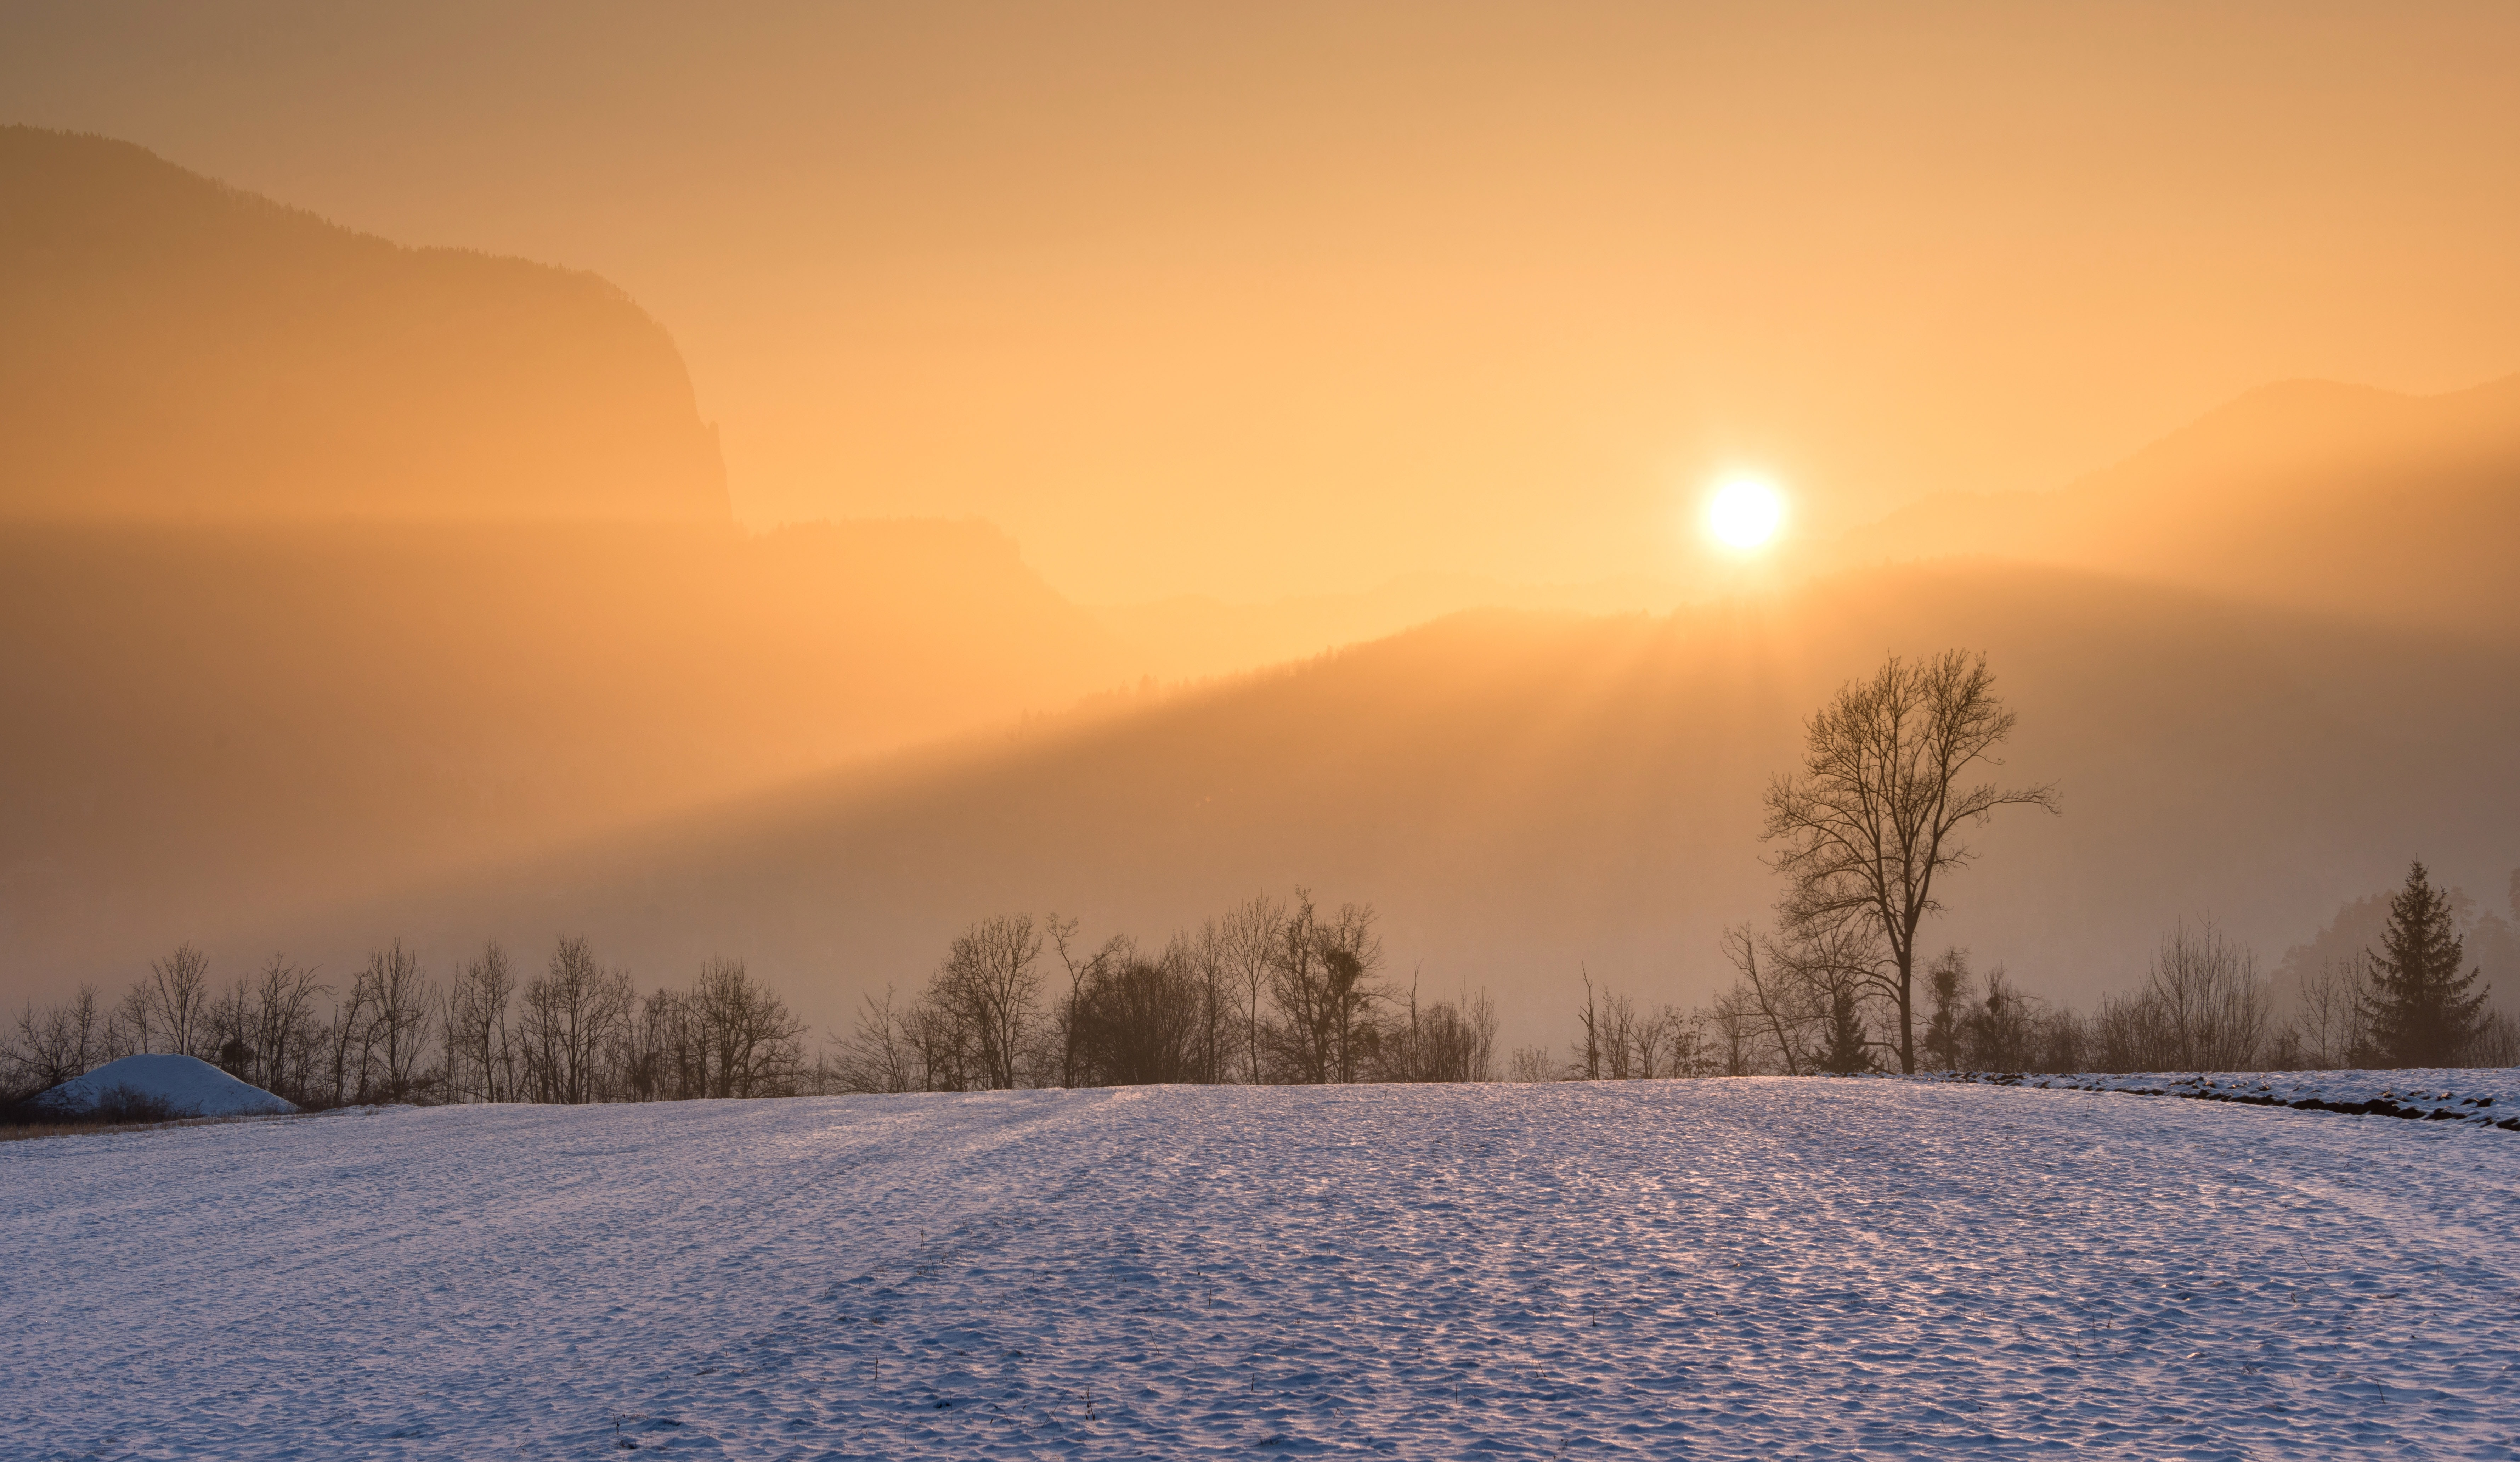 Golden rays of the sunset hit a barren snowy valley with mountains and trees in the distance